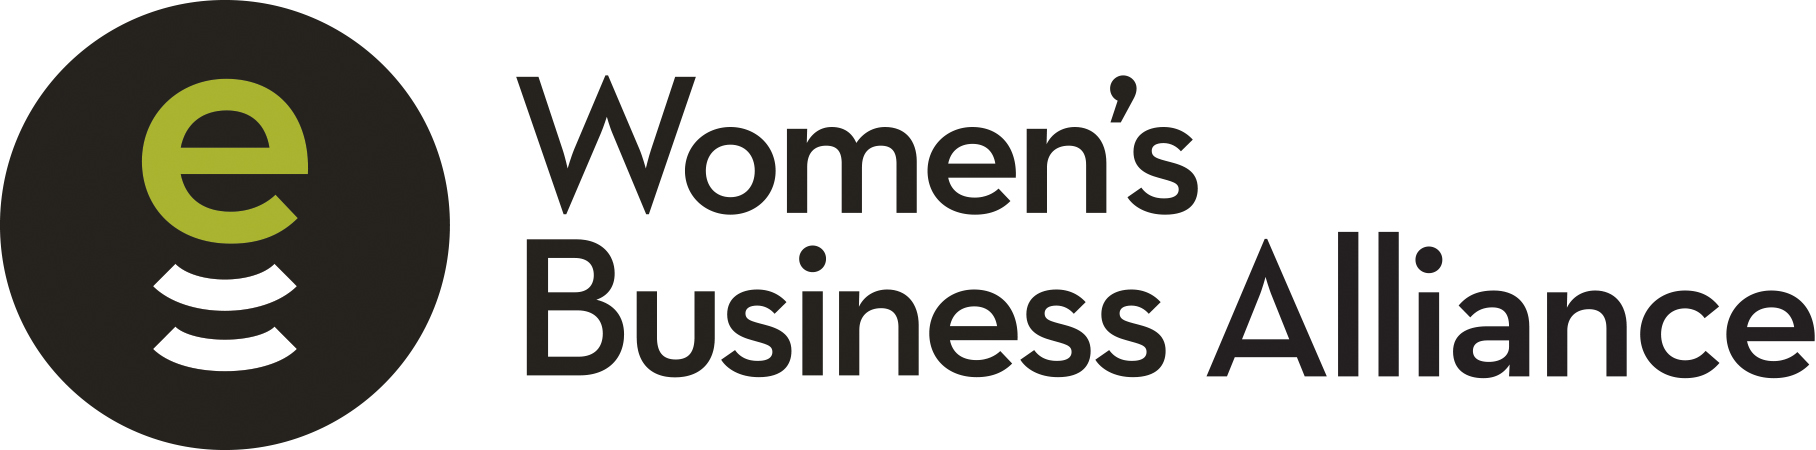 Womens Business Alliance Logo